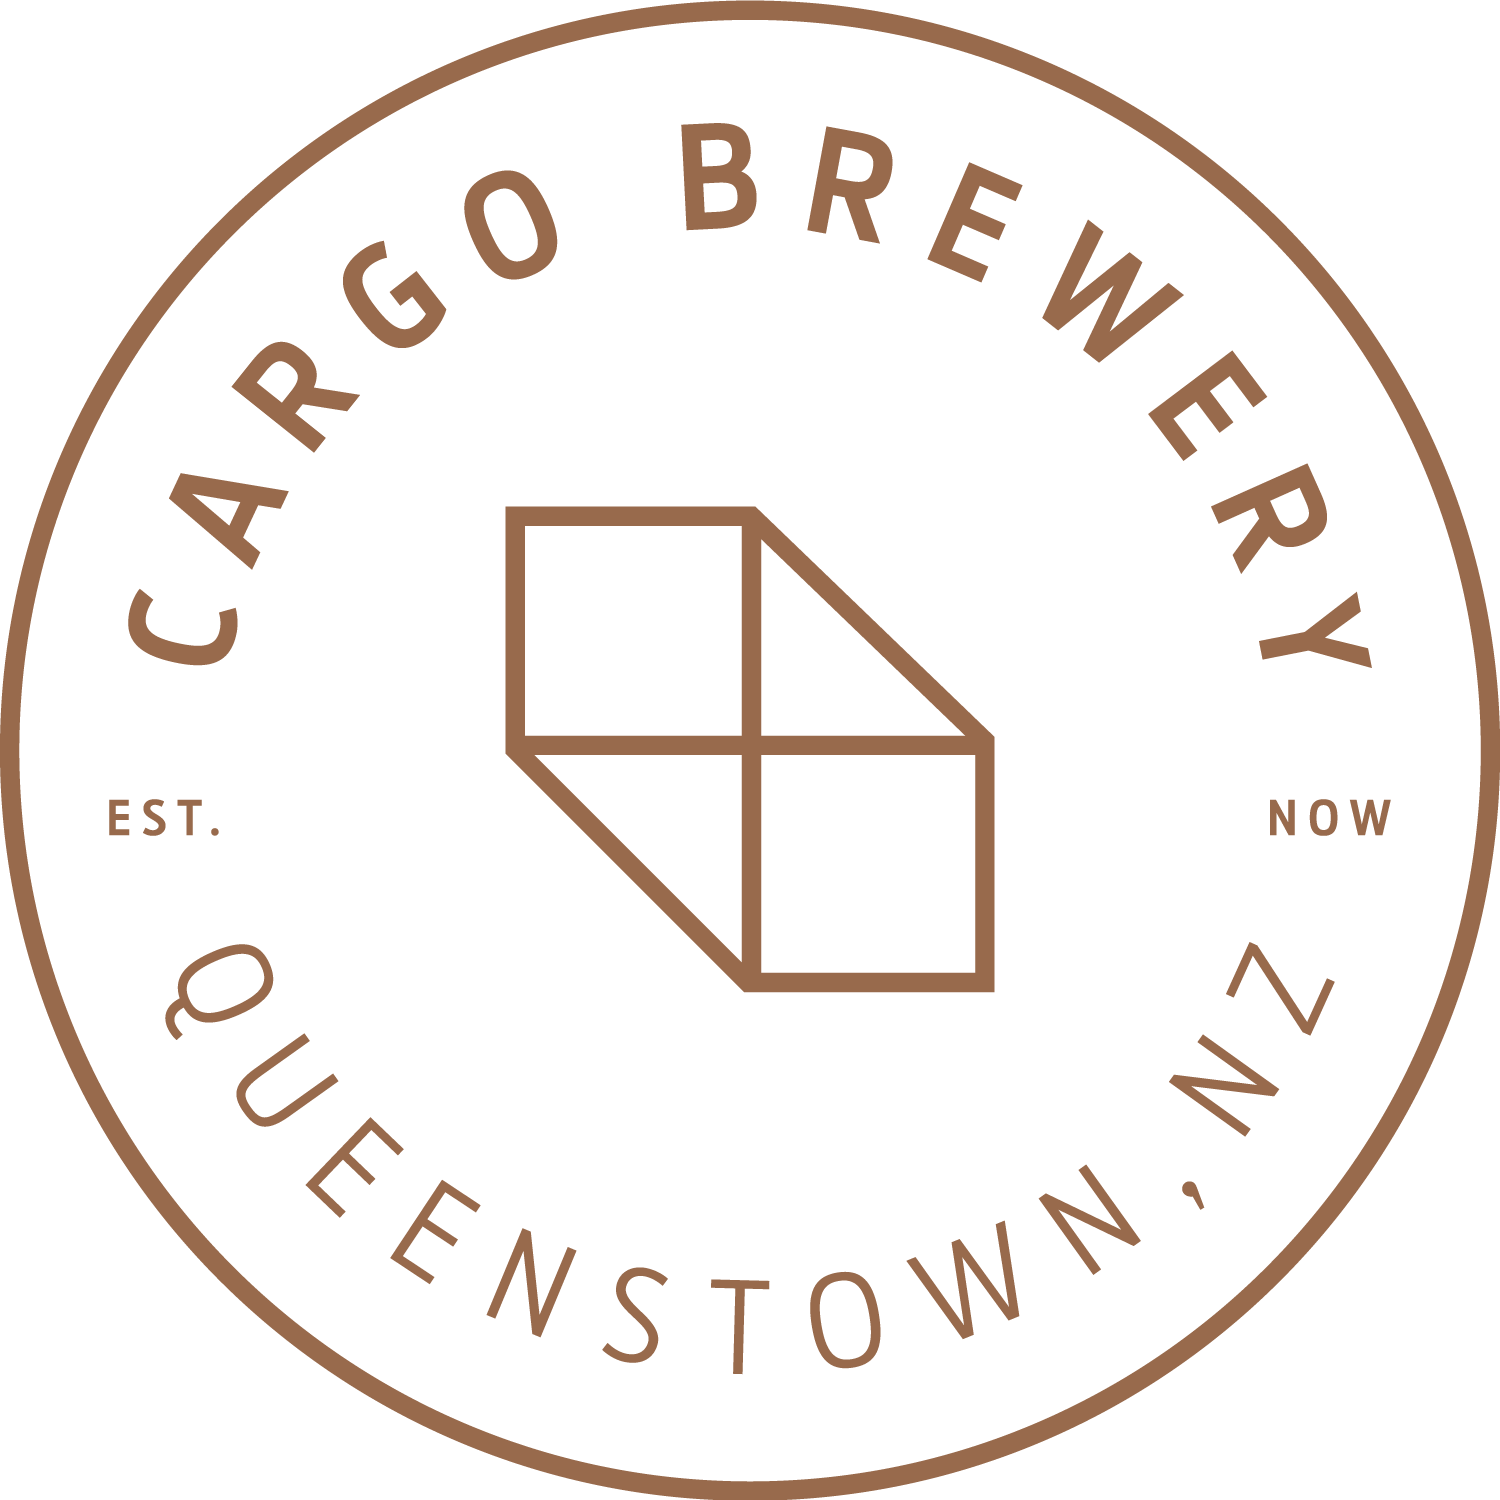 Cargo Brewery